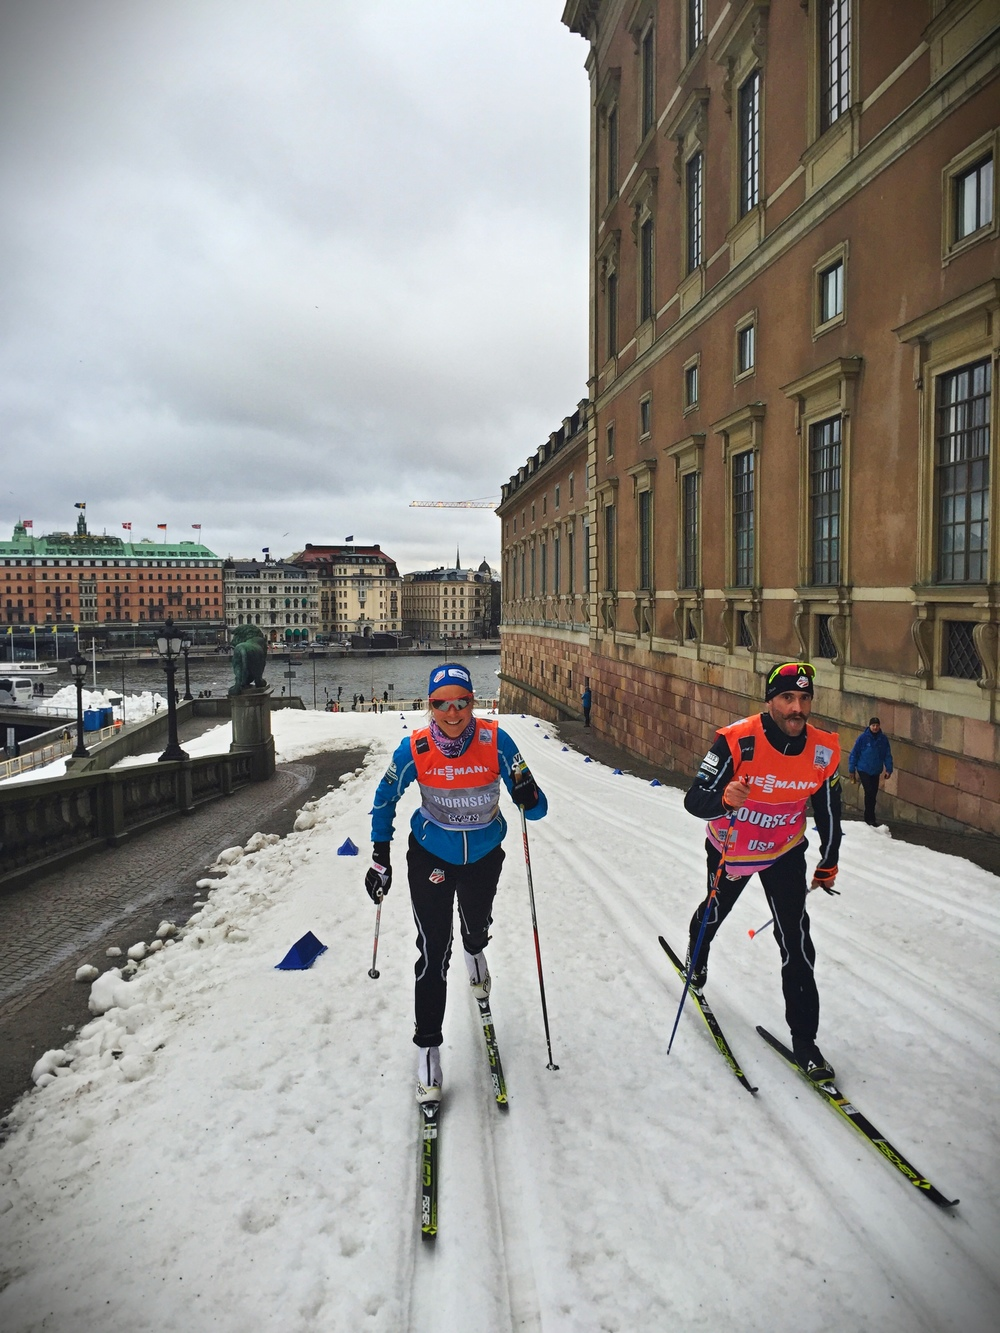 Sadie testing skis for a city sprint in Stockholm.